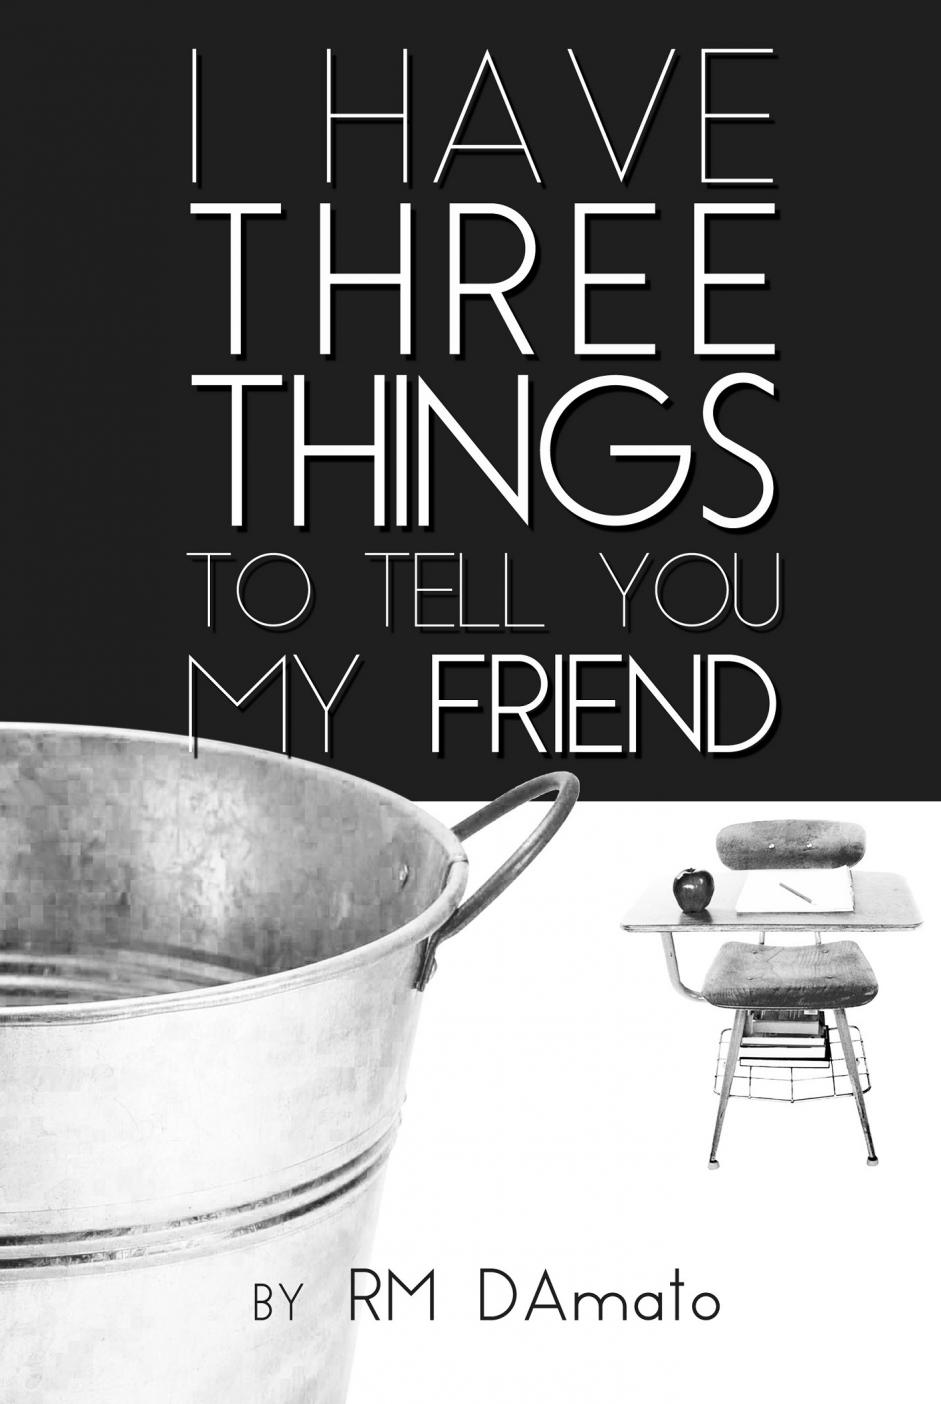 I Have Three Things To Tell You, My Friend